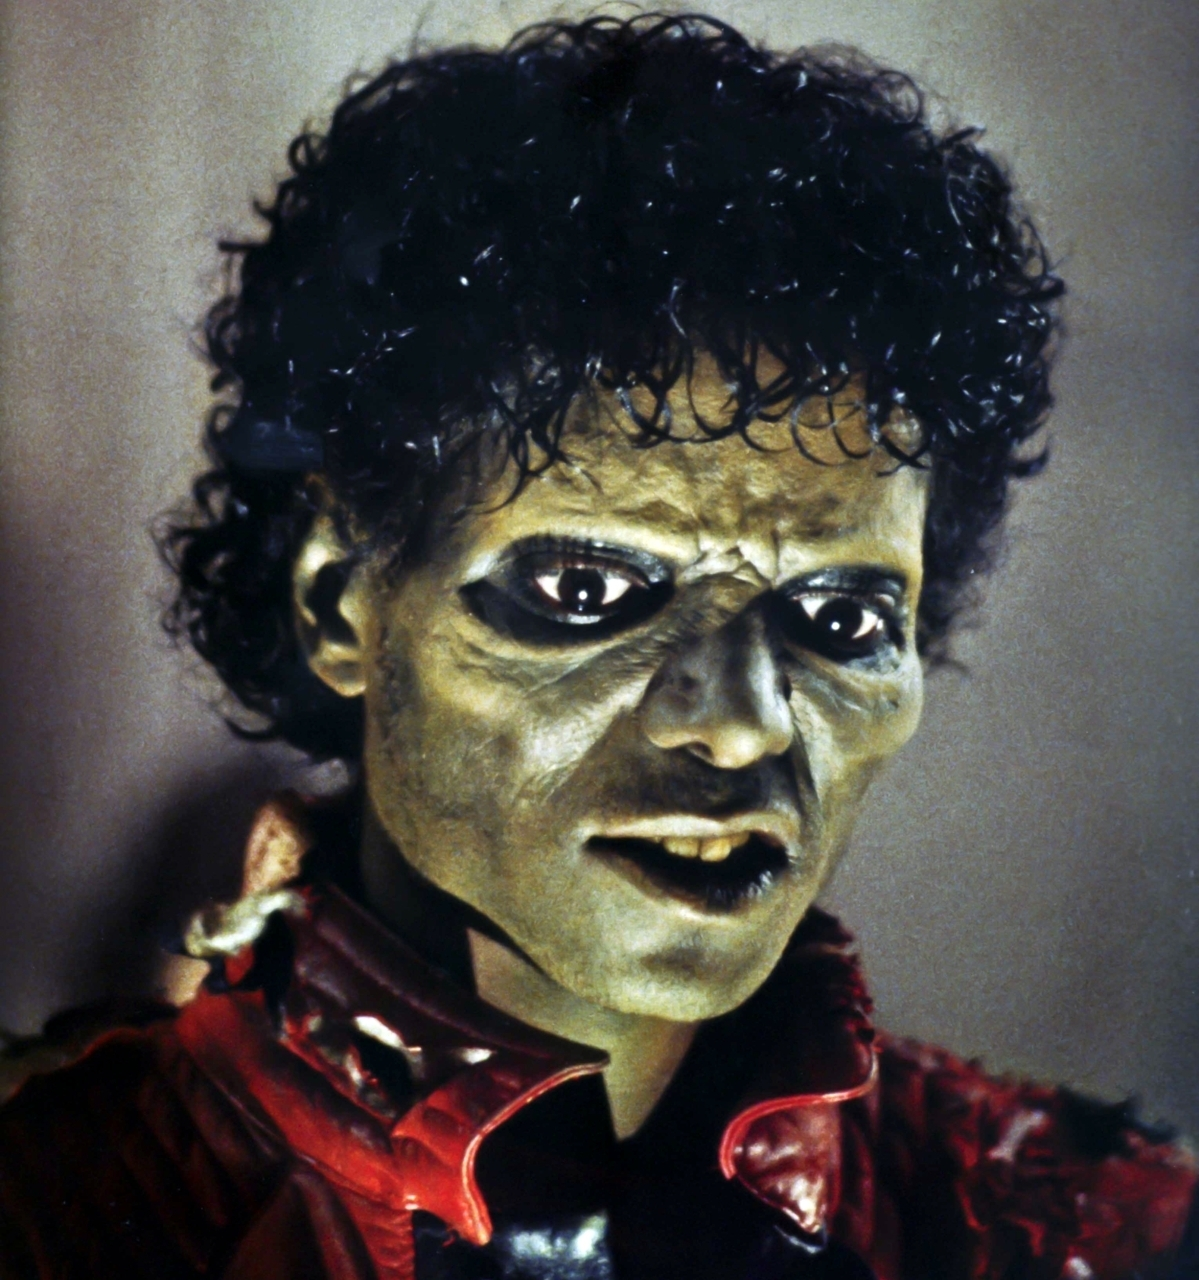 Michael Jackson as an undead character in